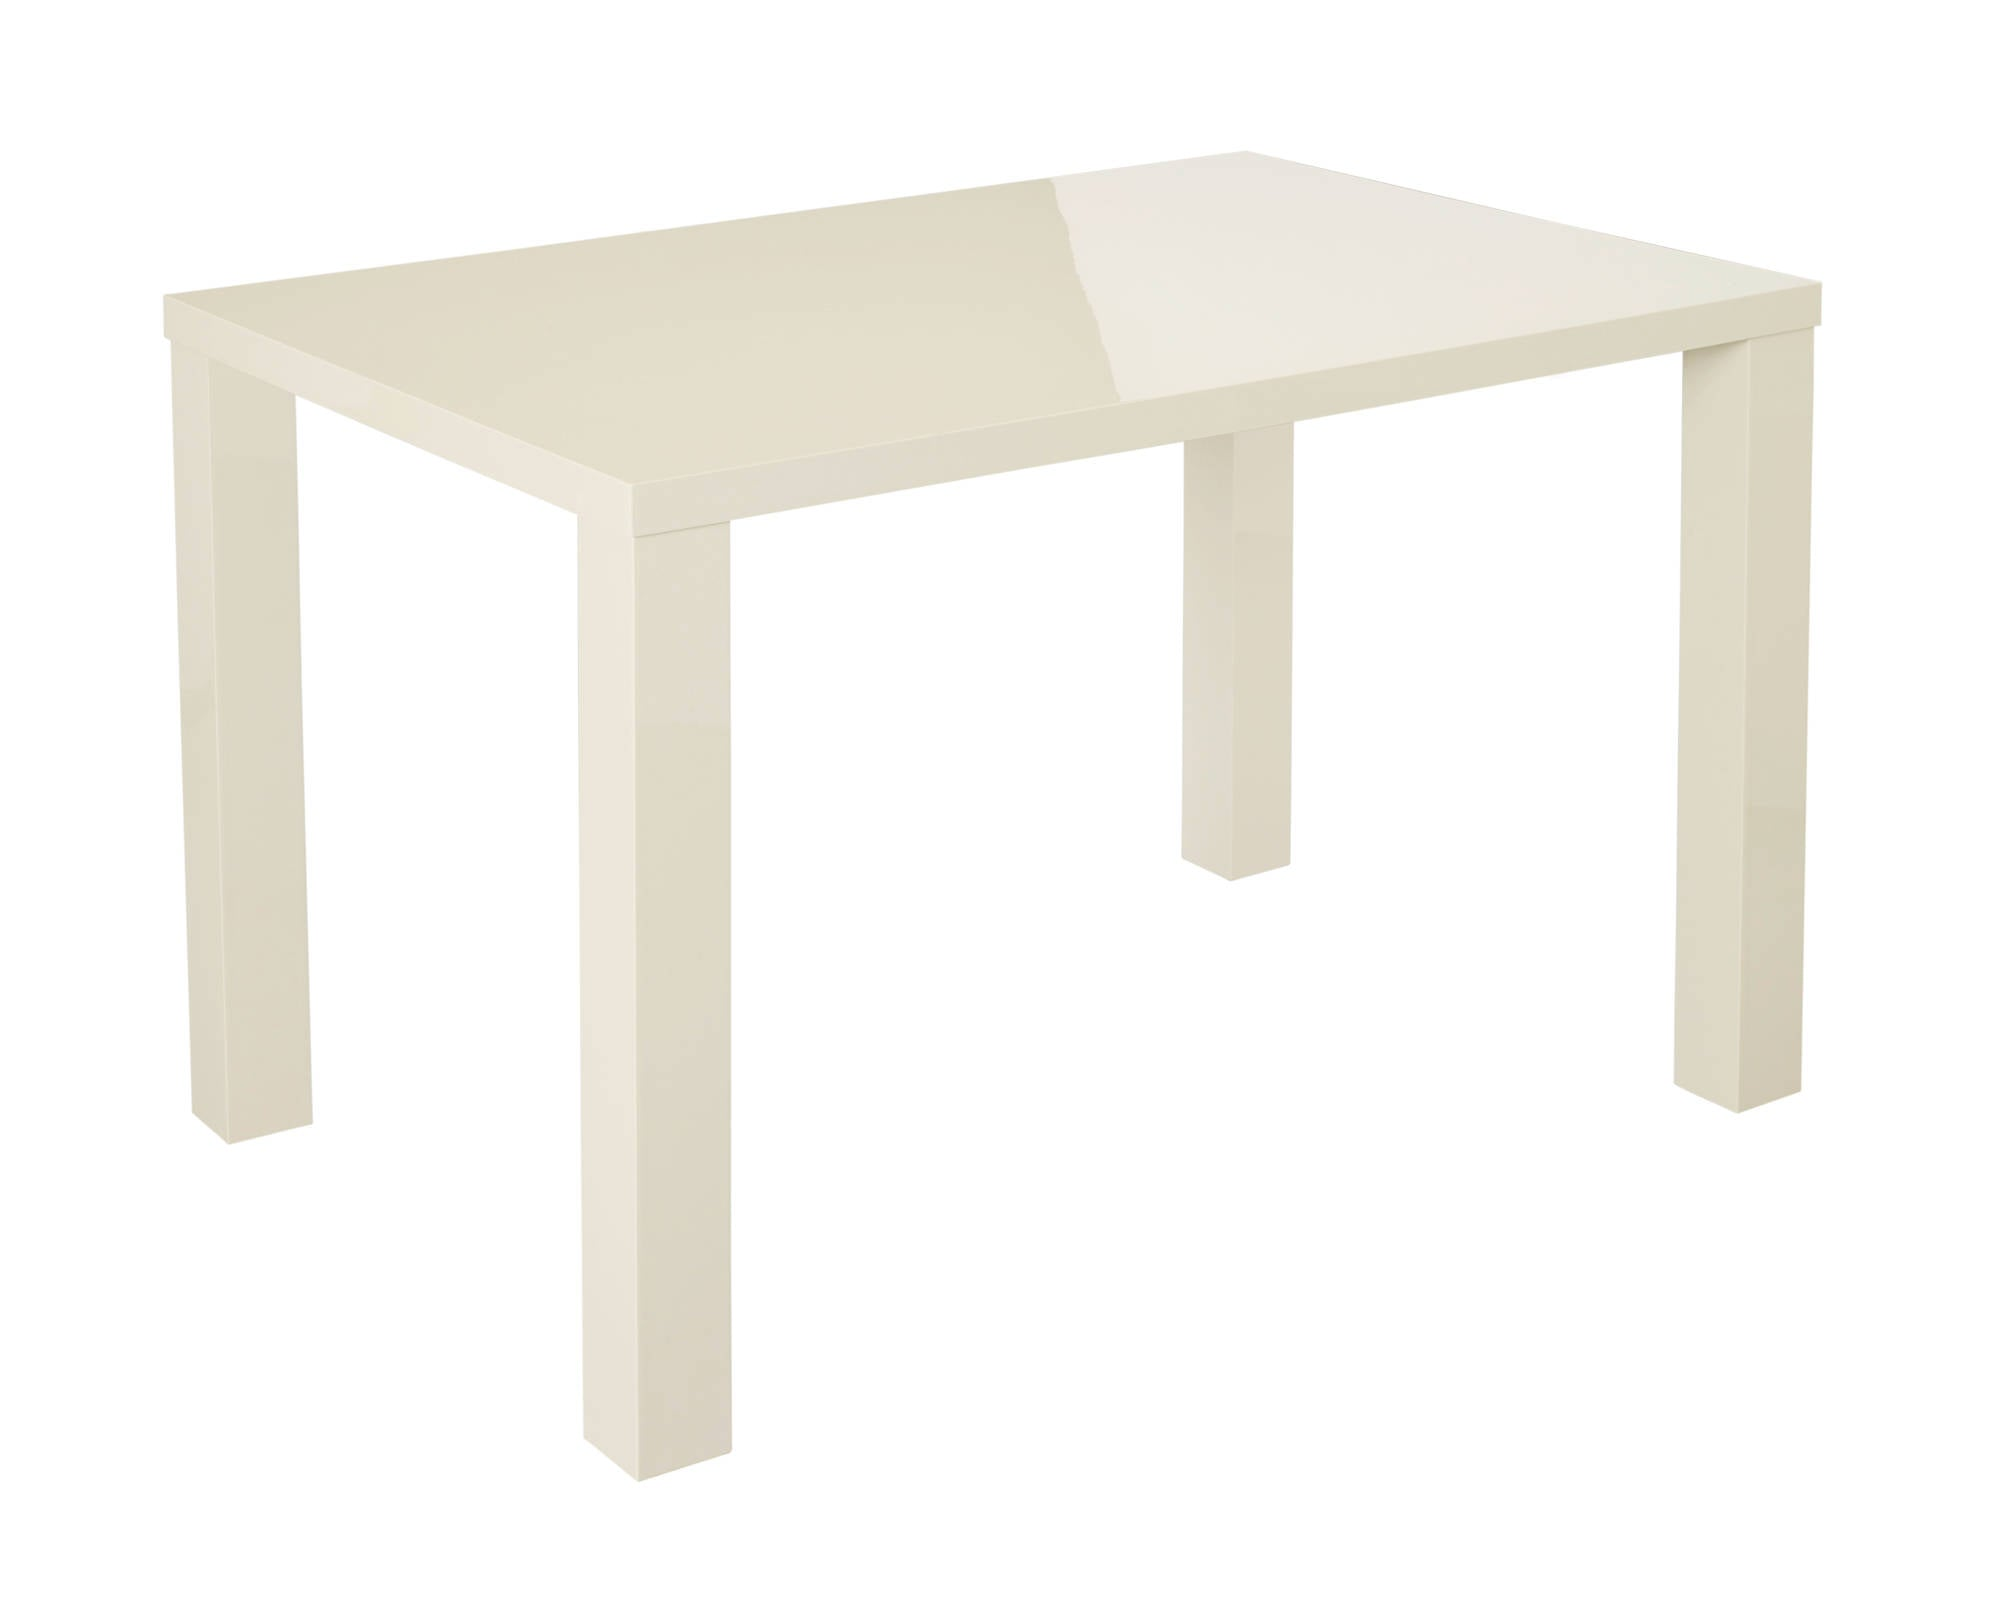 Sterling Medium Dining Table in Cream - Ezzo